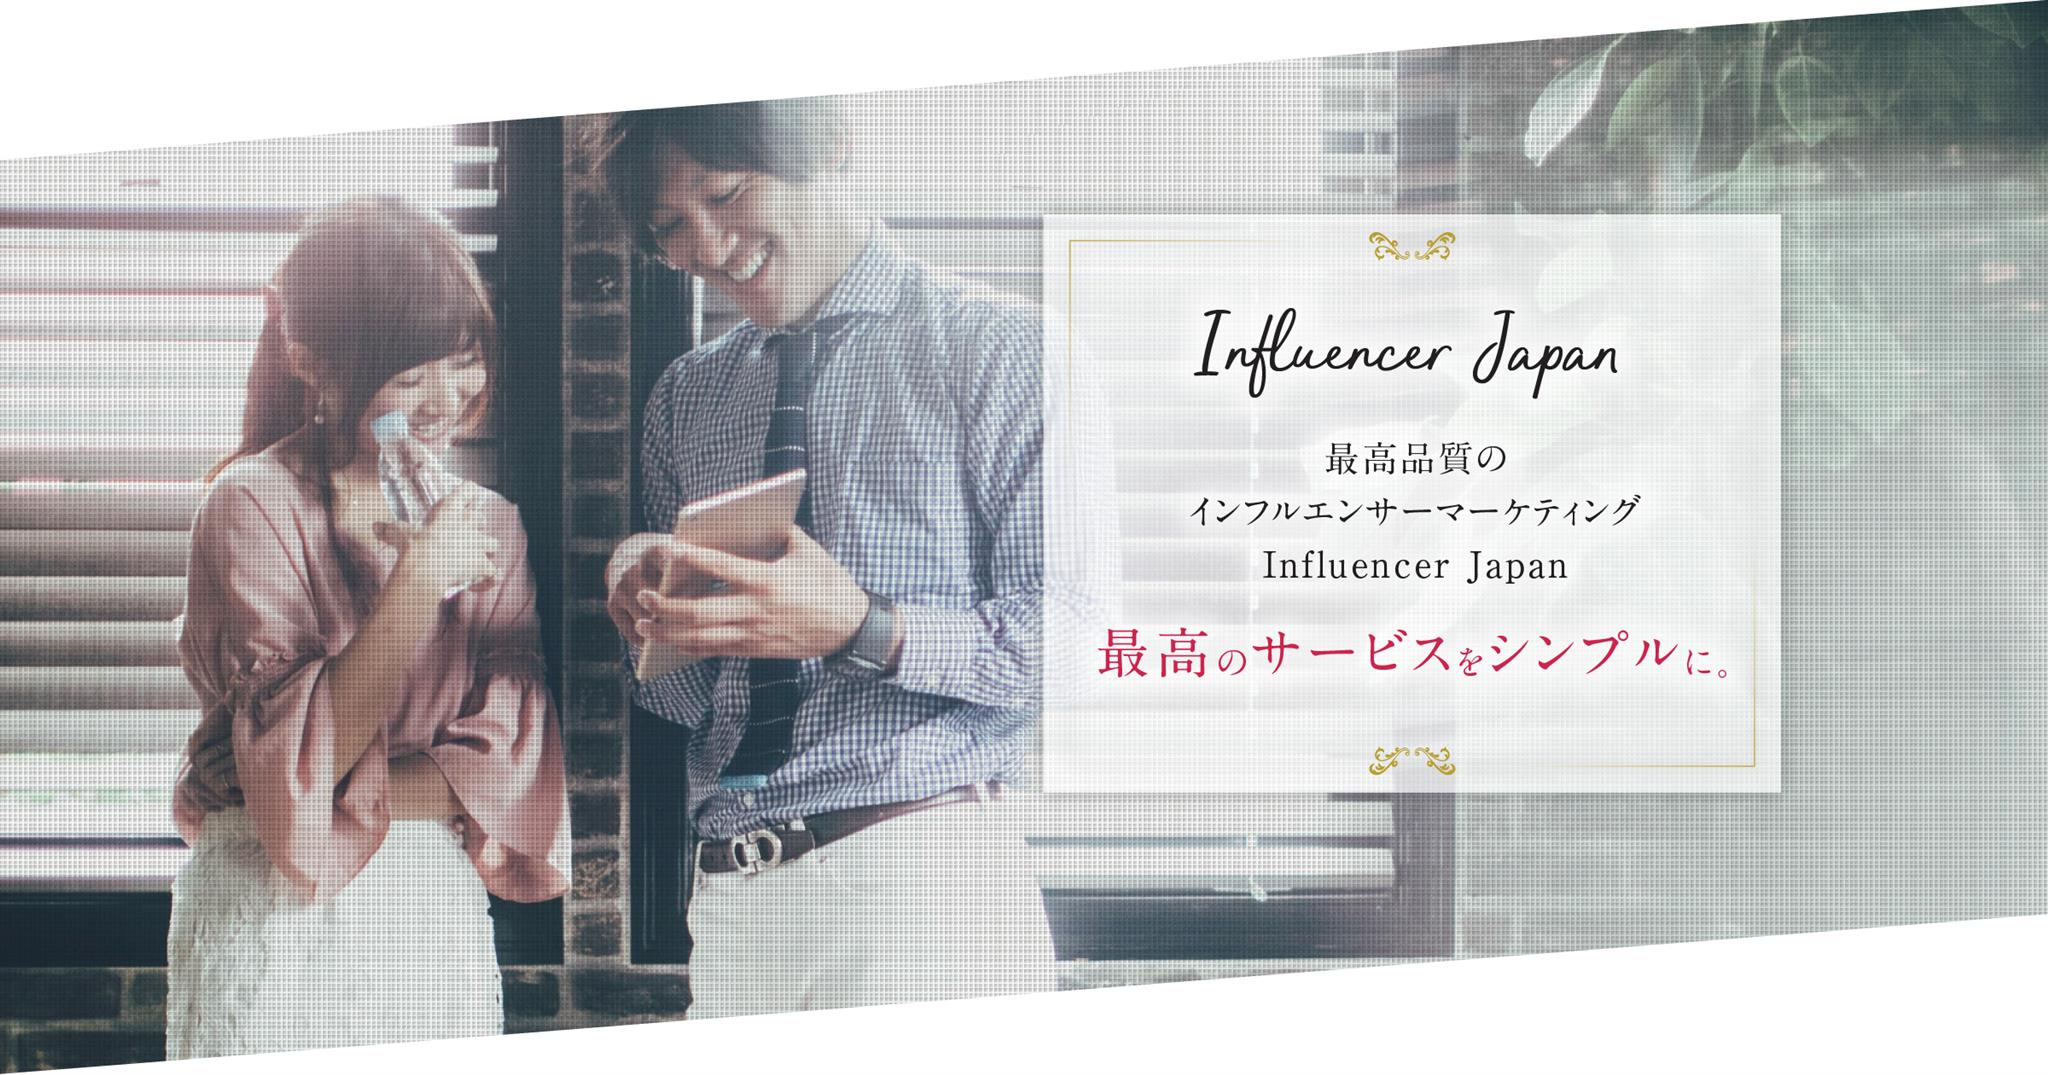 「influencer japan 会社」の画像検索結果